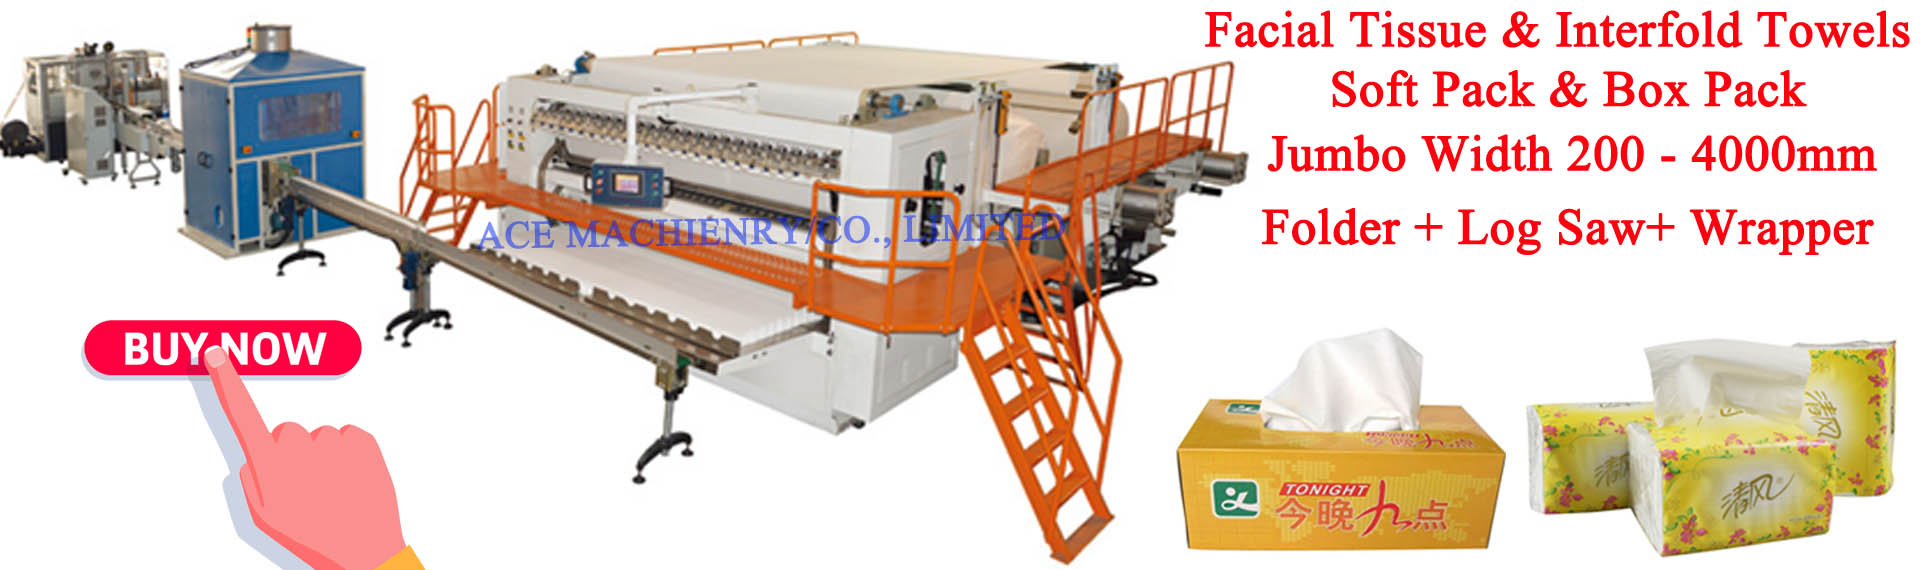 ACE MACHINERY CO , LIMITED - Facial Tissue Machine,Paper